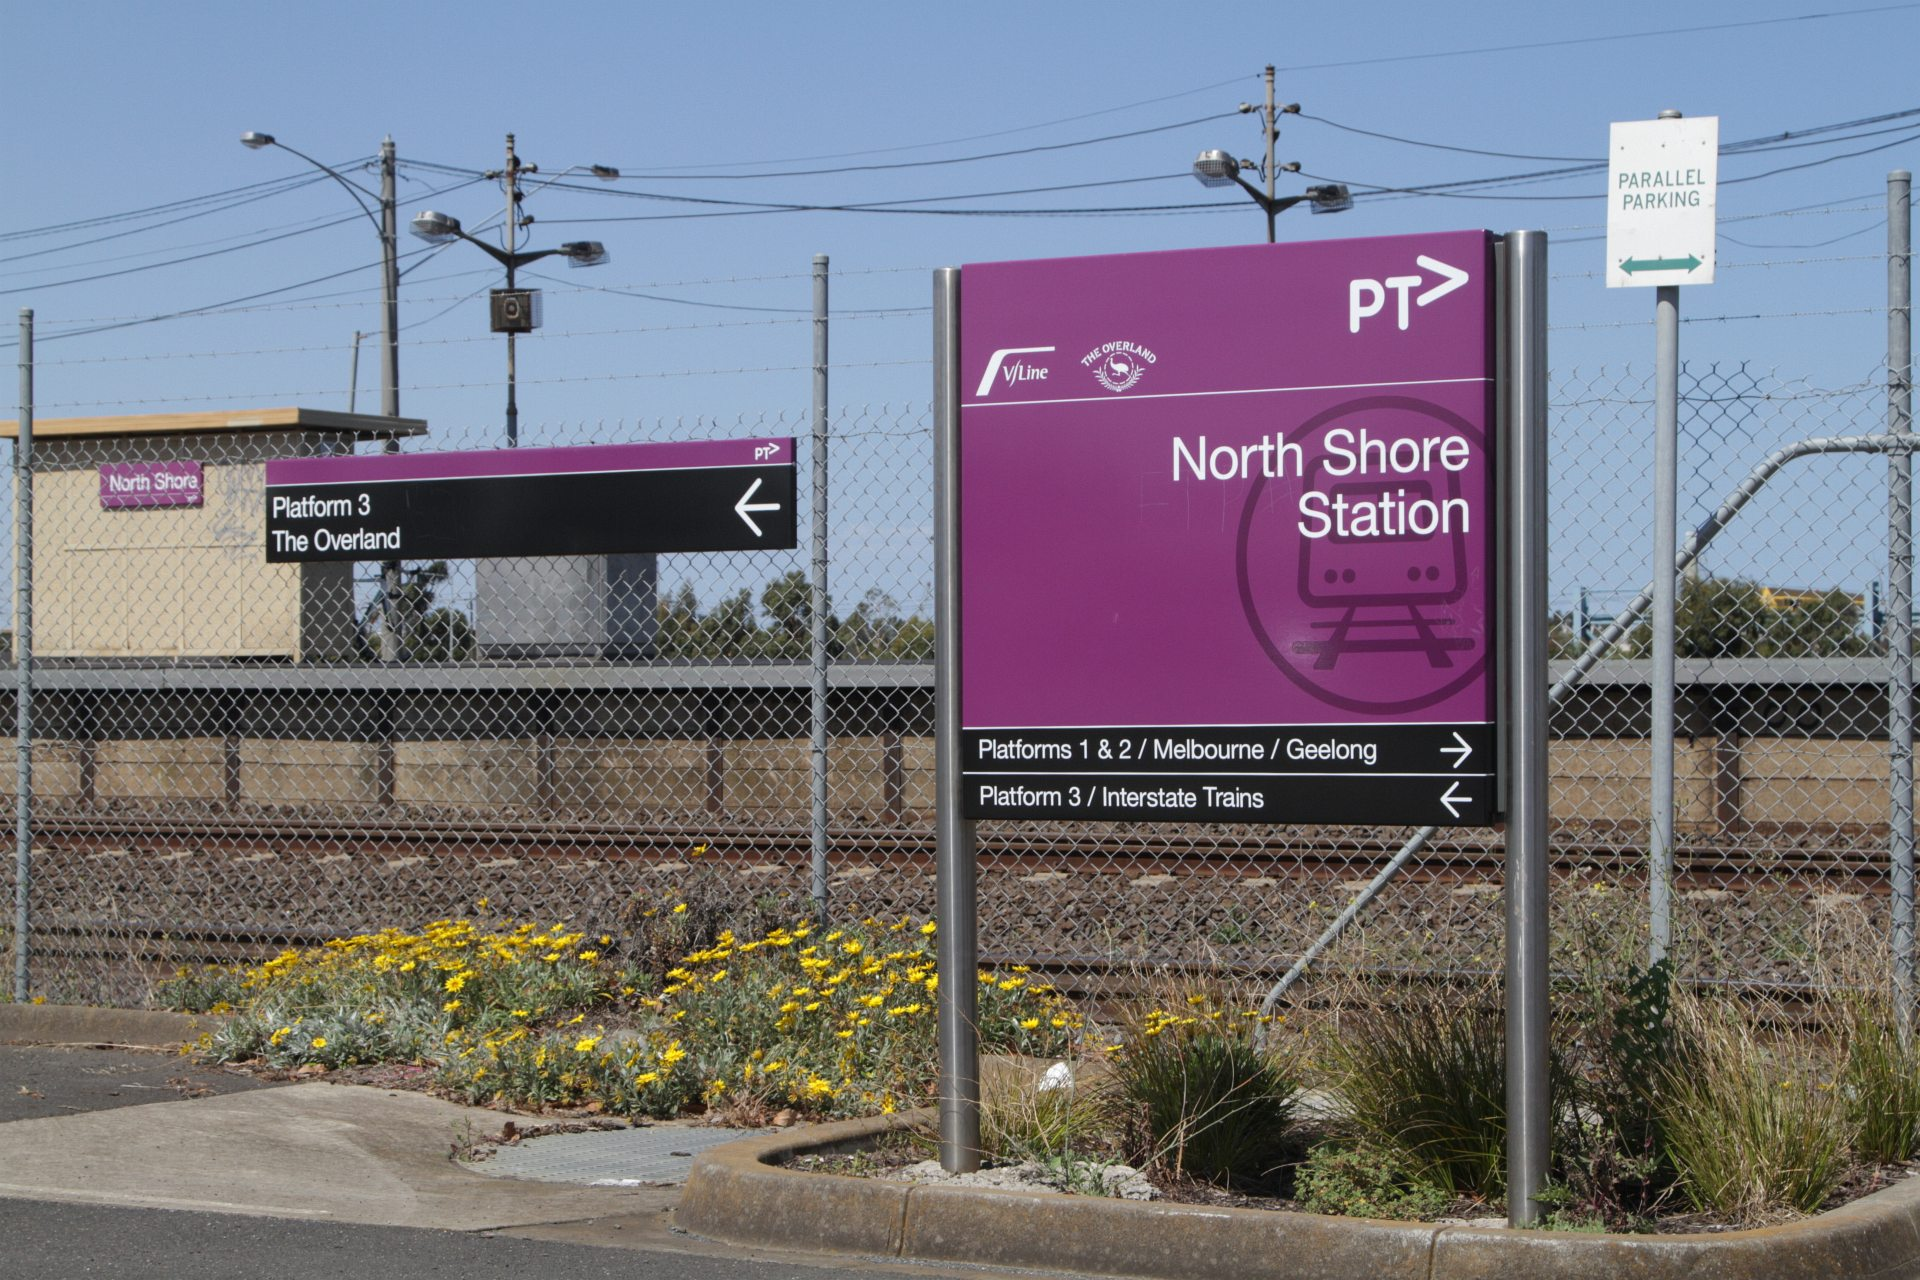 Rail Geelong Gallery Ptv Signage At The Entrance To The Station Car Park